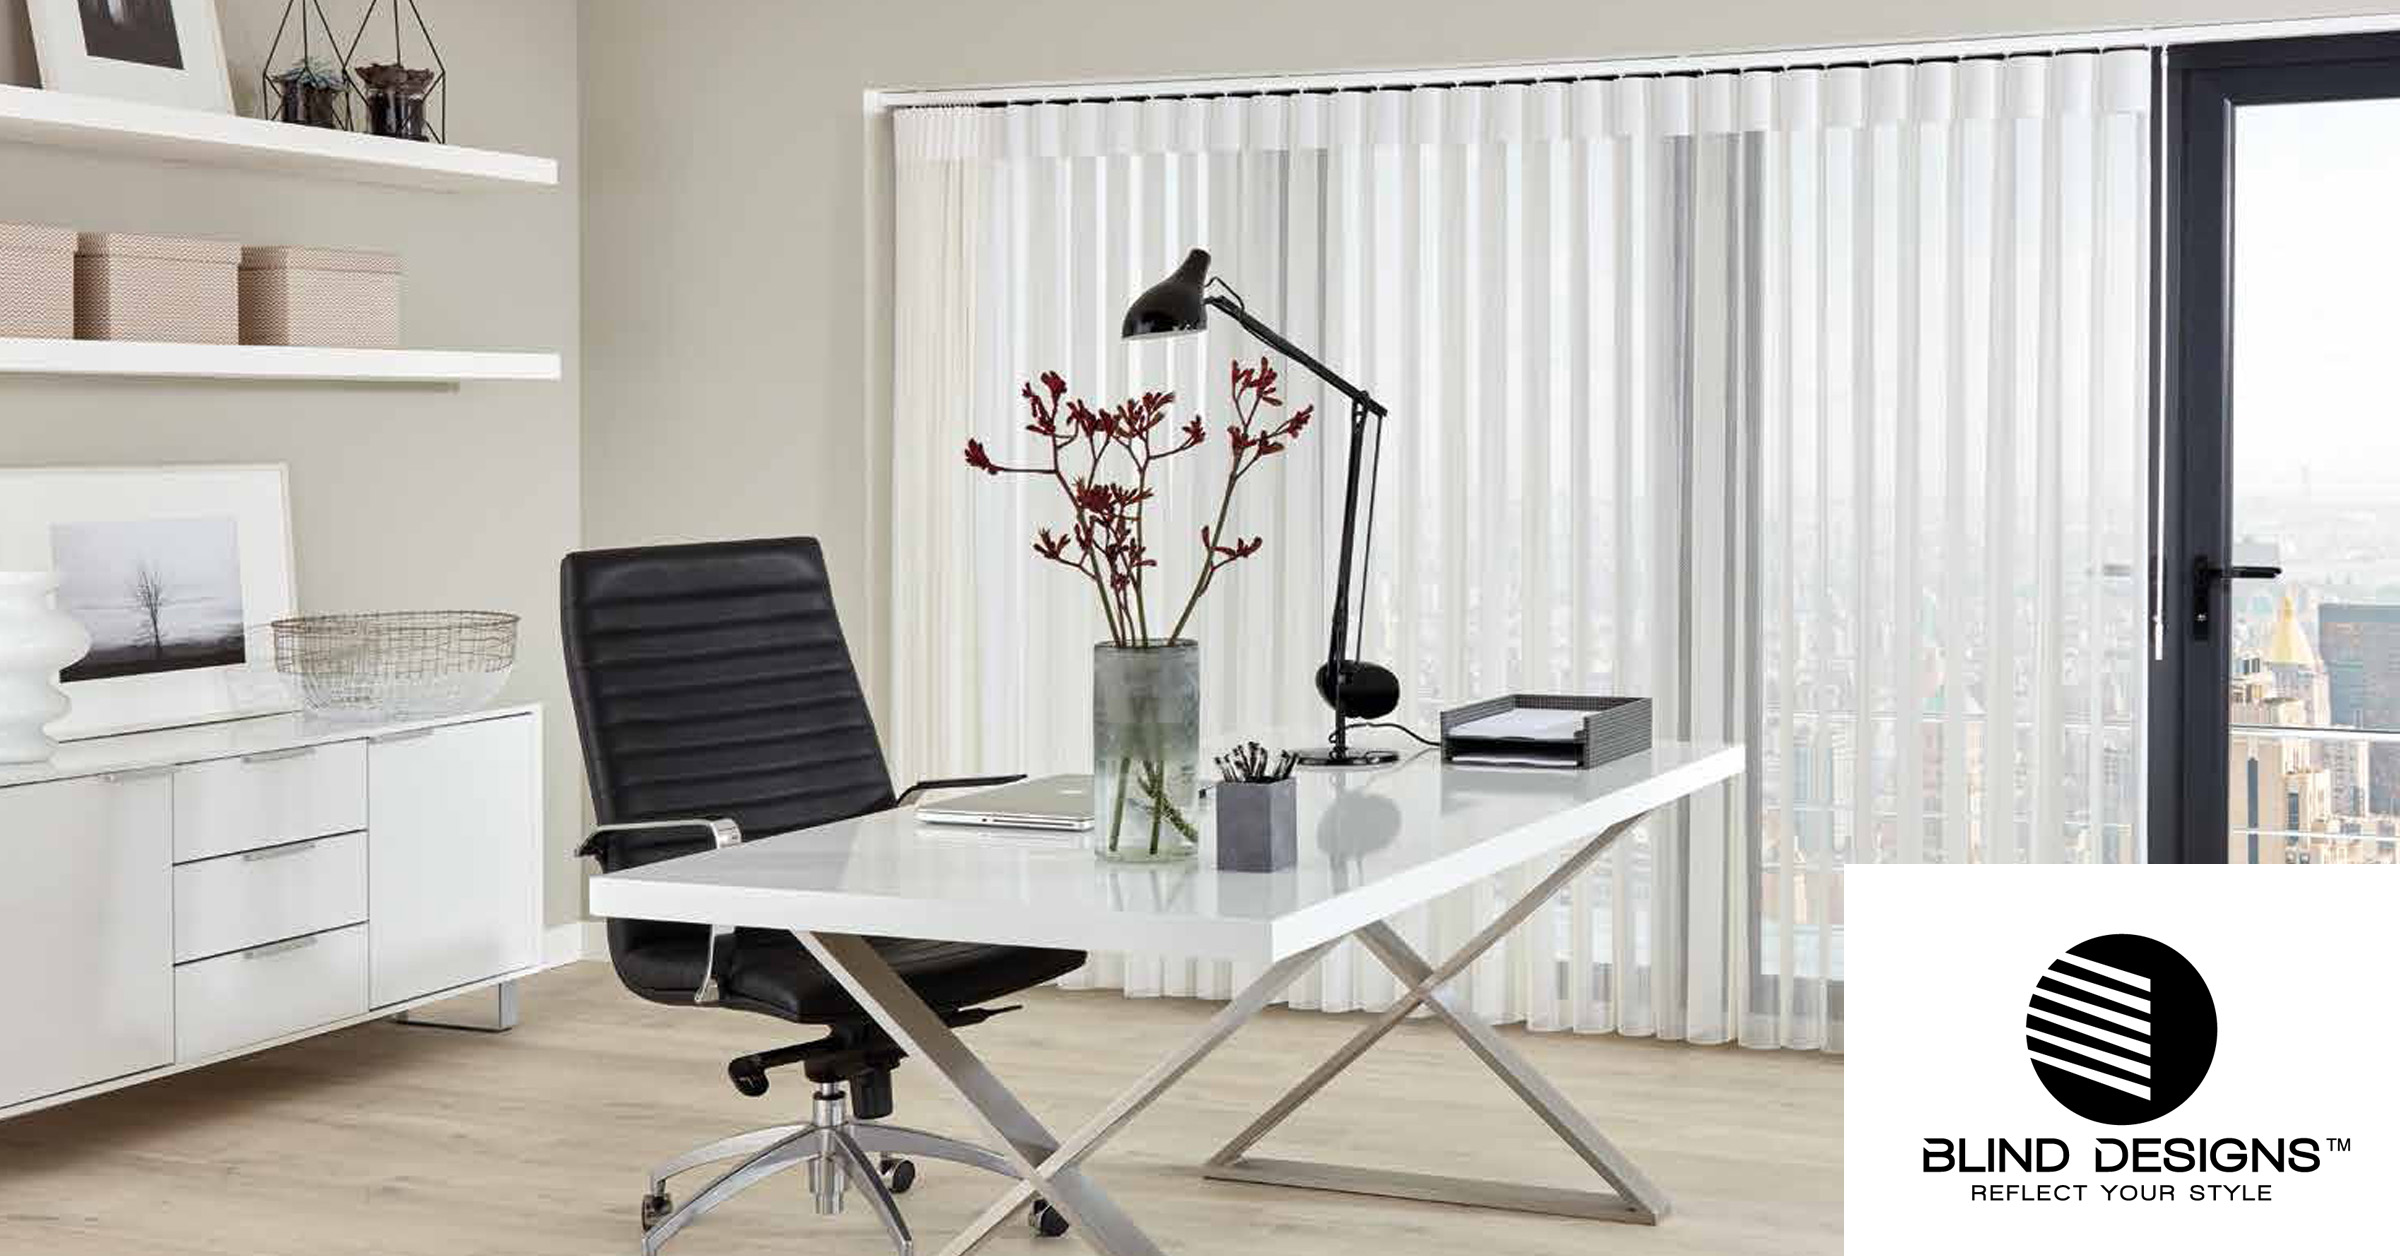 ALLUSION BLINDS – CLASSICAL LOOK WITH A MODERN TWIST